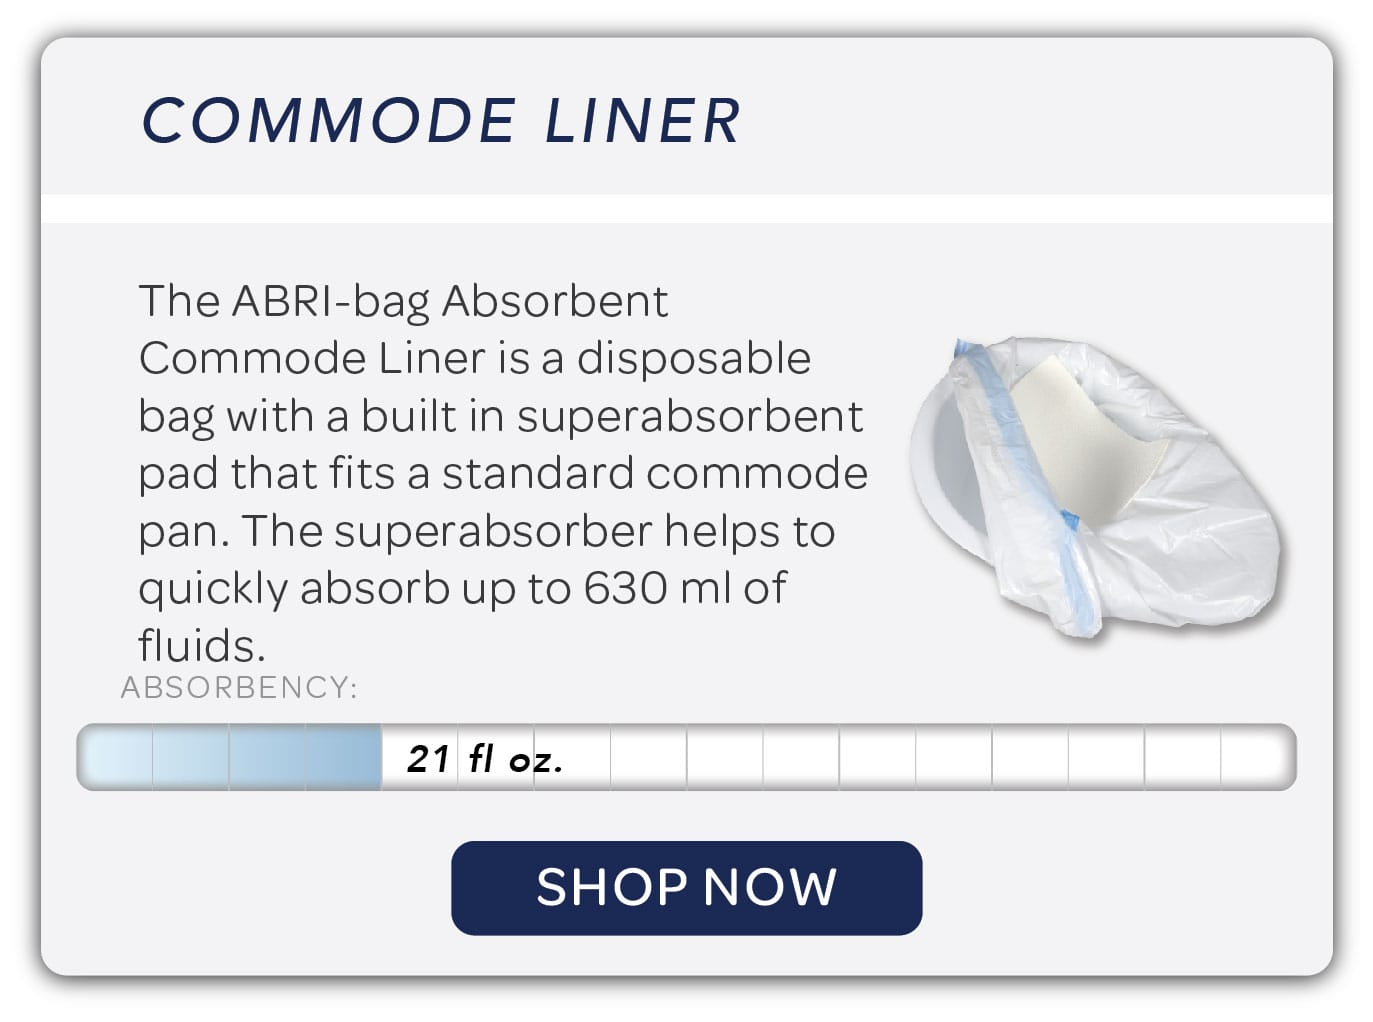 Commode Liner Image